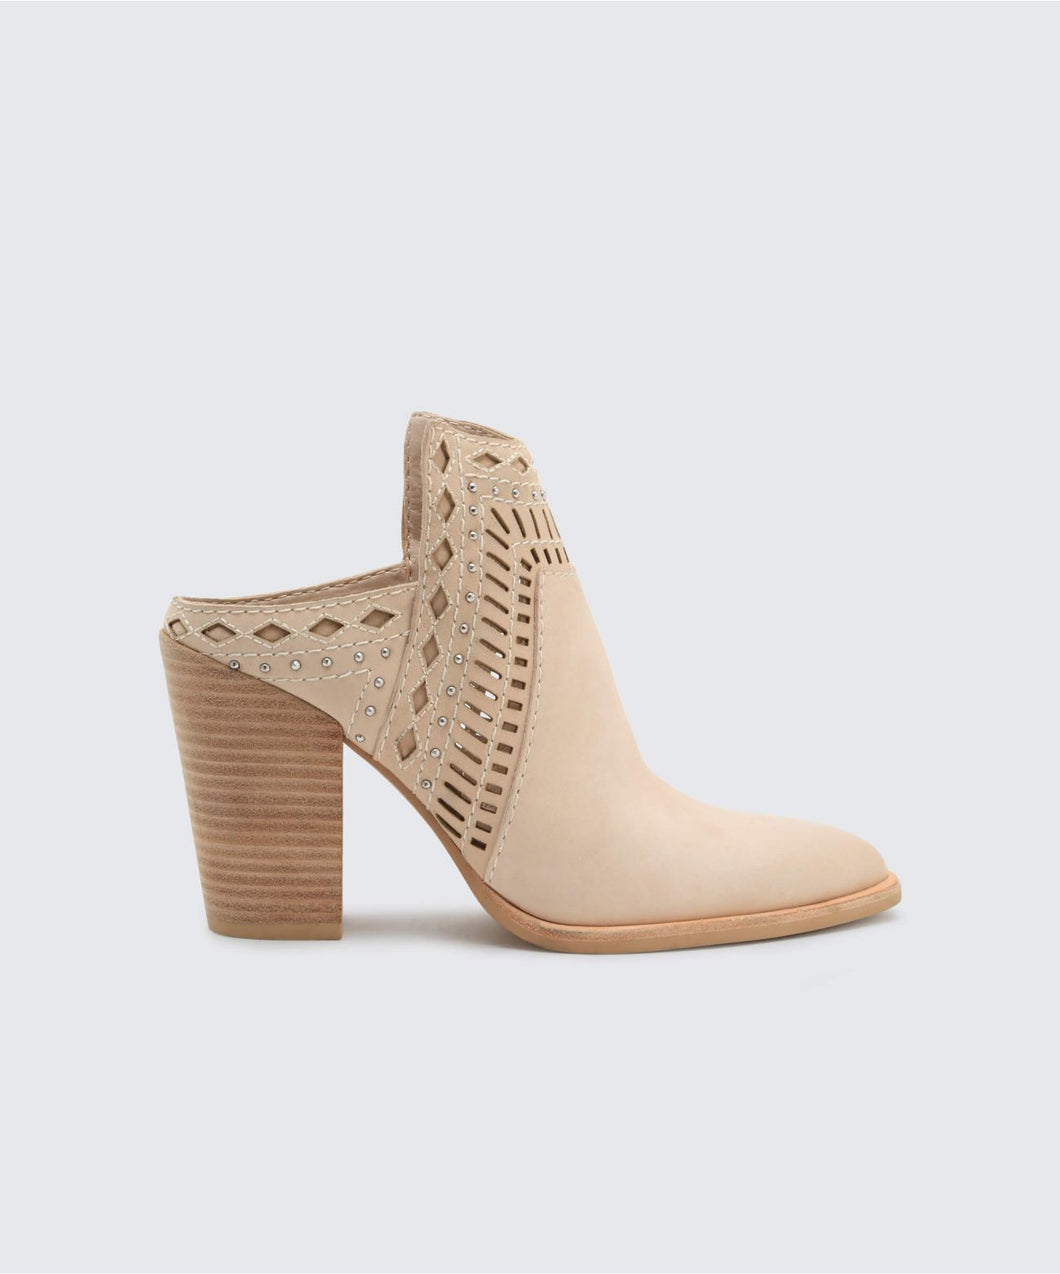 KHIA BOOTIES IN SAND -   Dolce Vita